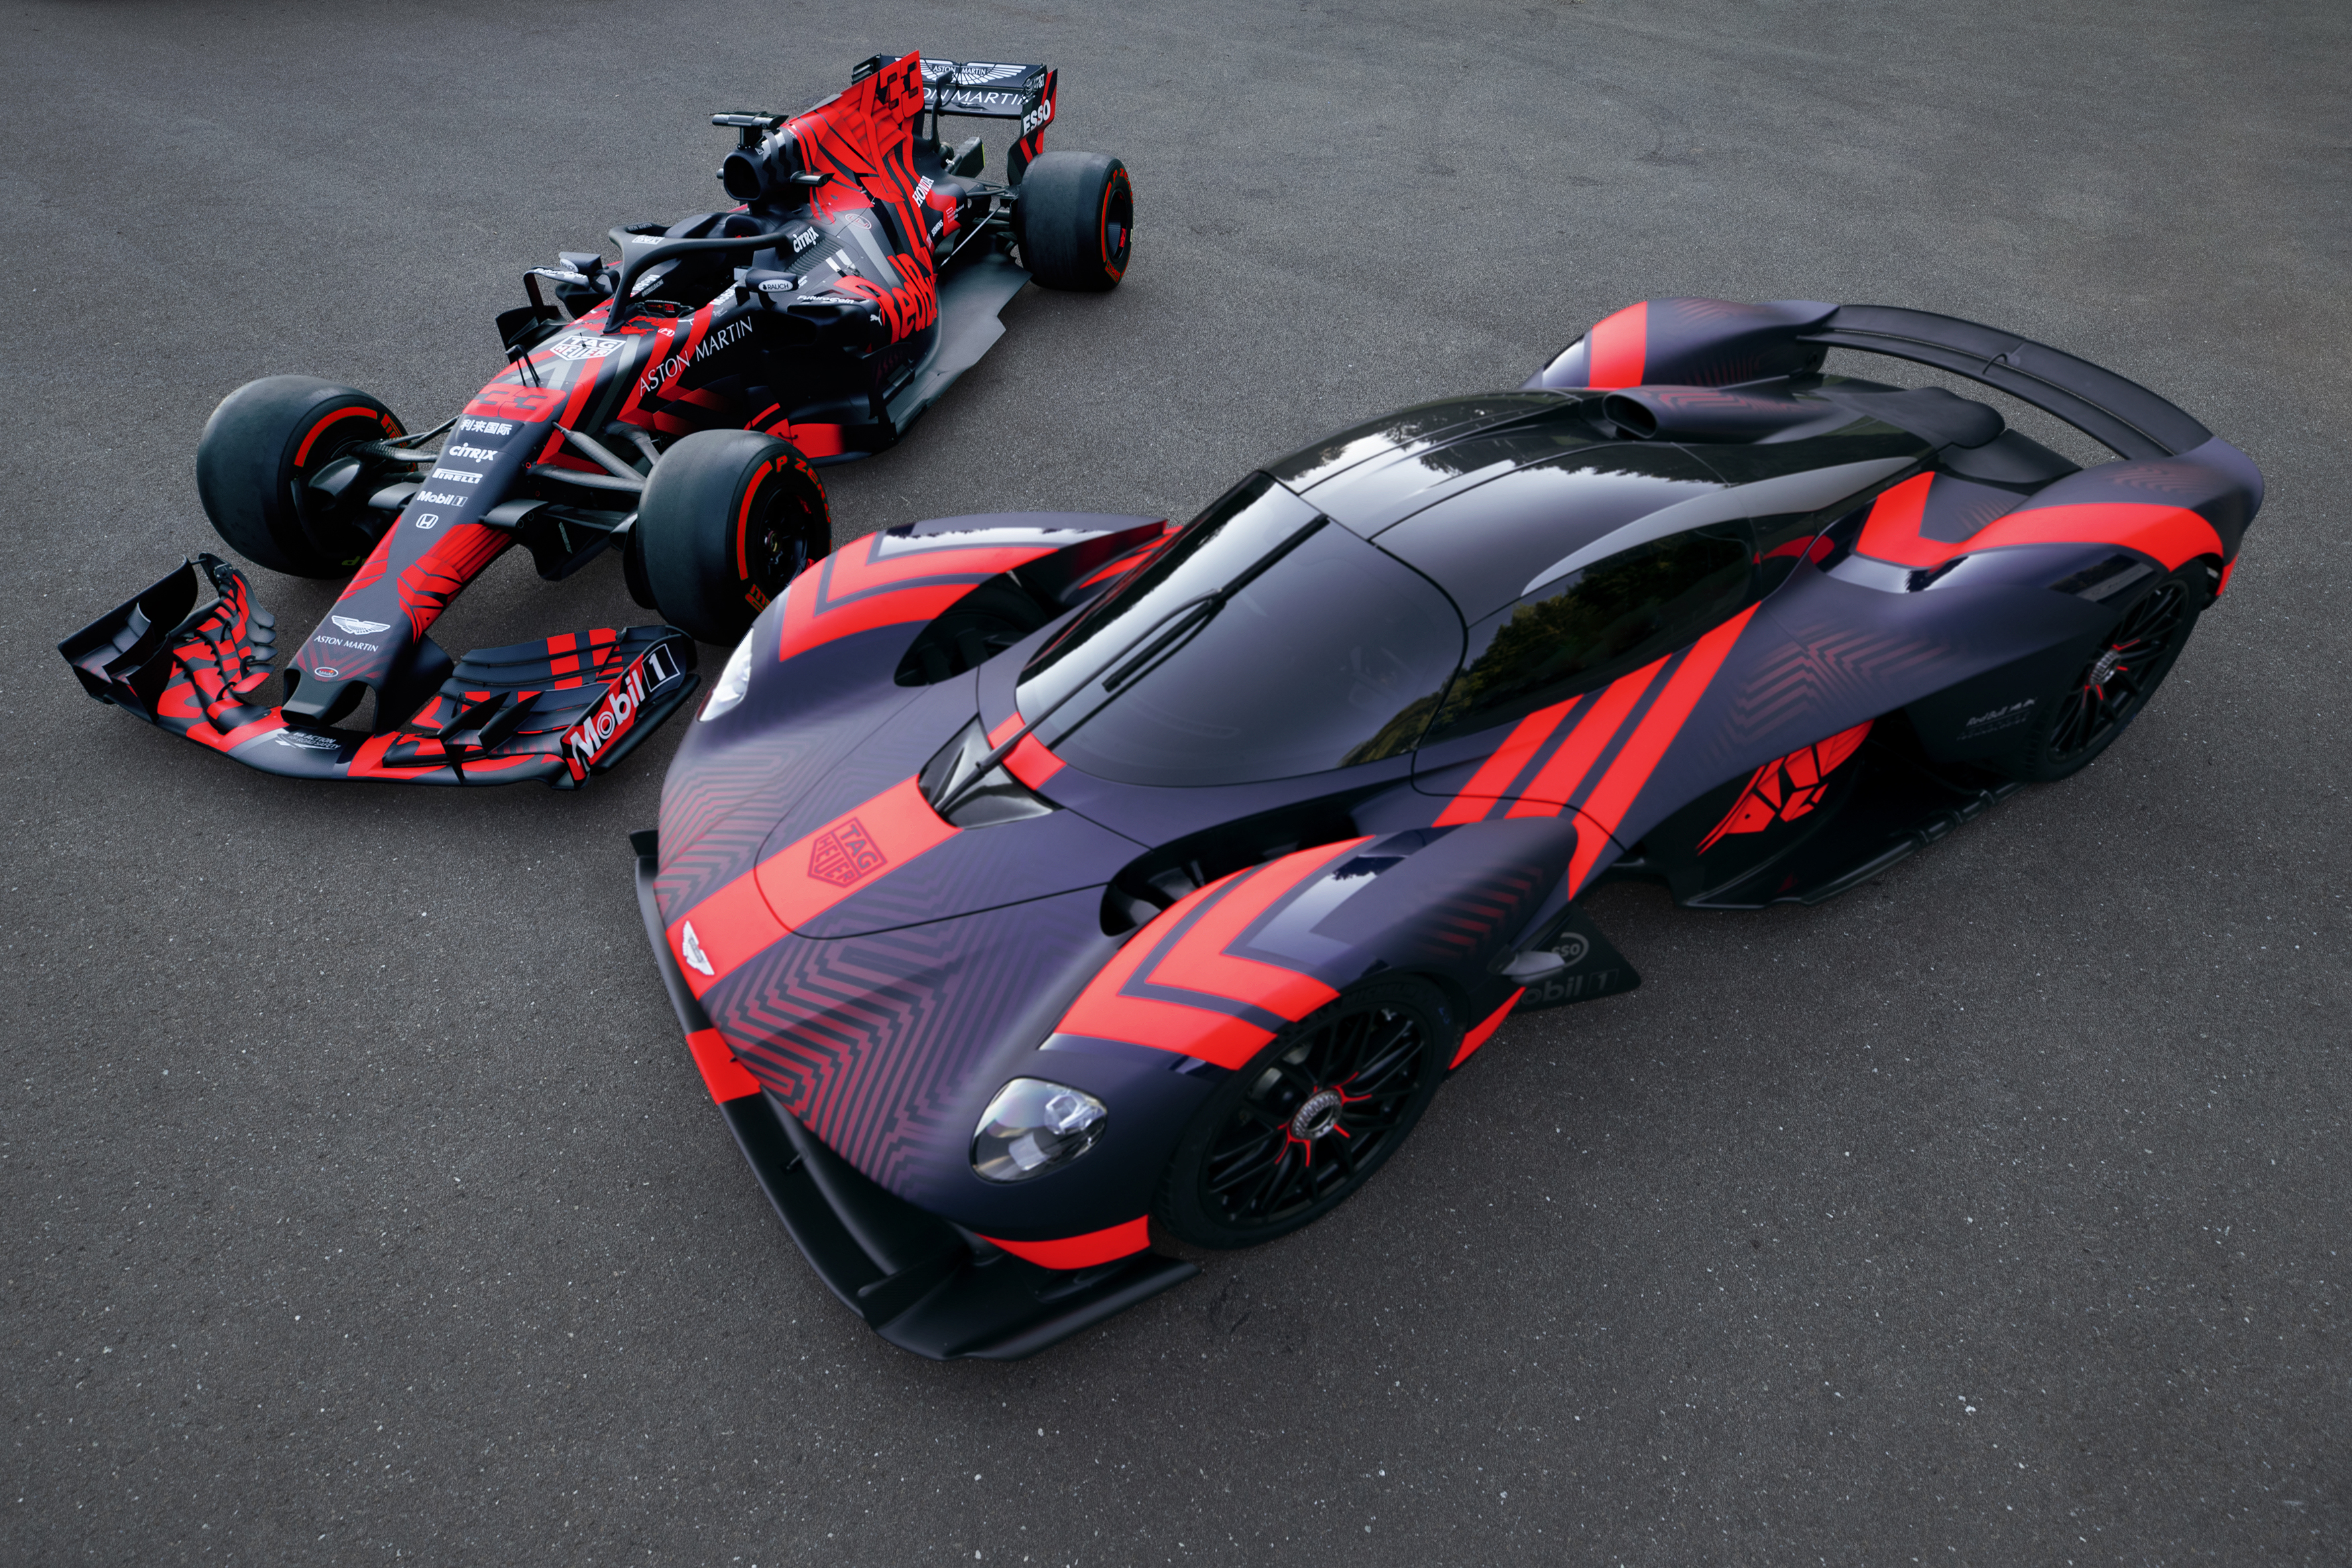 Aston Martin Valkyrie Joins Red Bull Formula 1 Racing Car At Silverstone Circuit Autoevolution